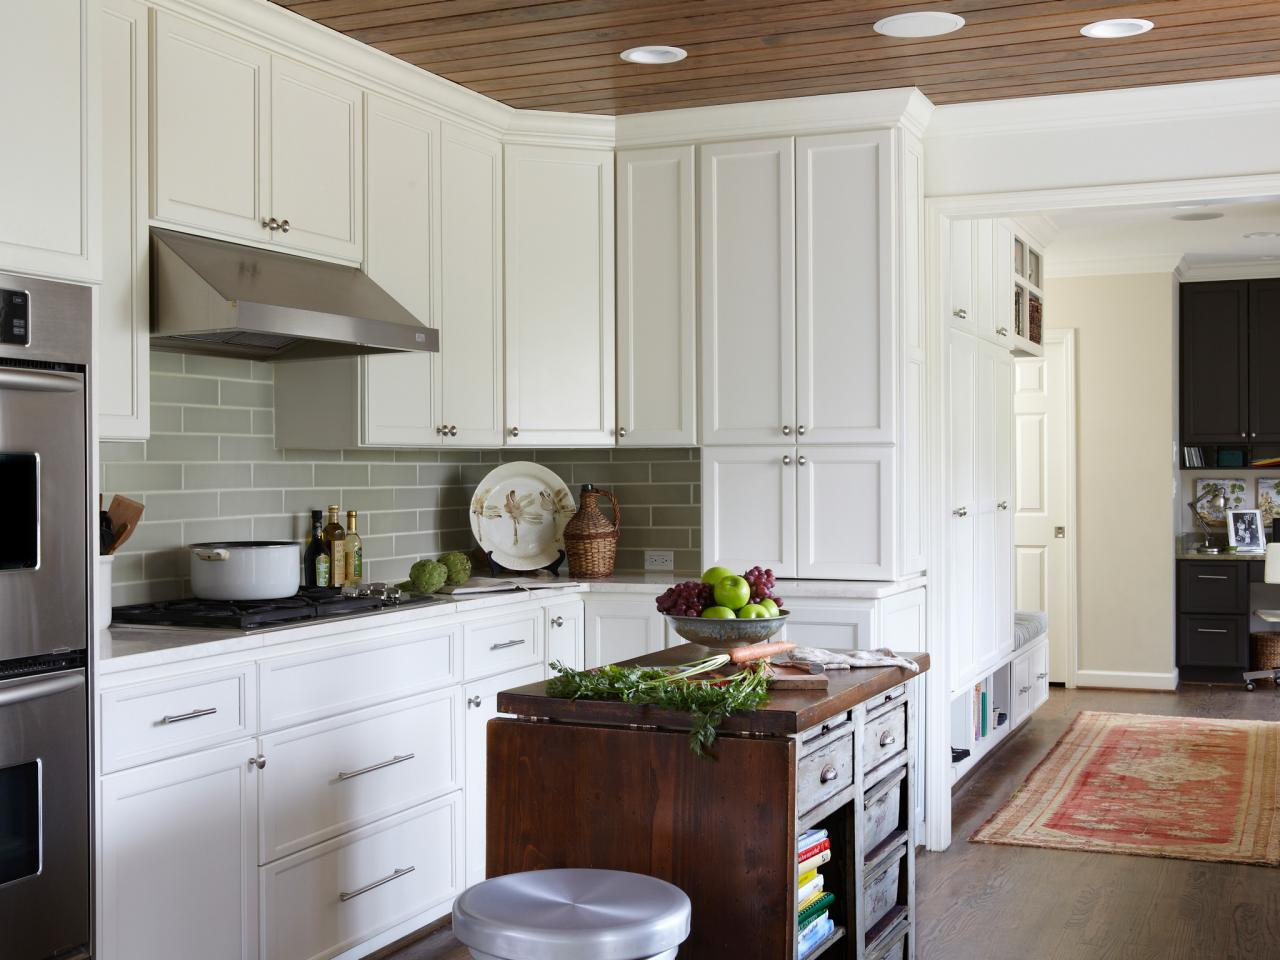 Kitchen Remodeling Contractors In Tulsa Call For An Accurate Bid Today